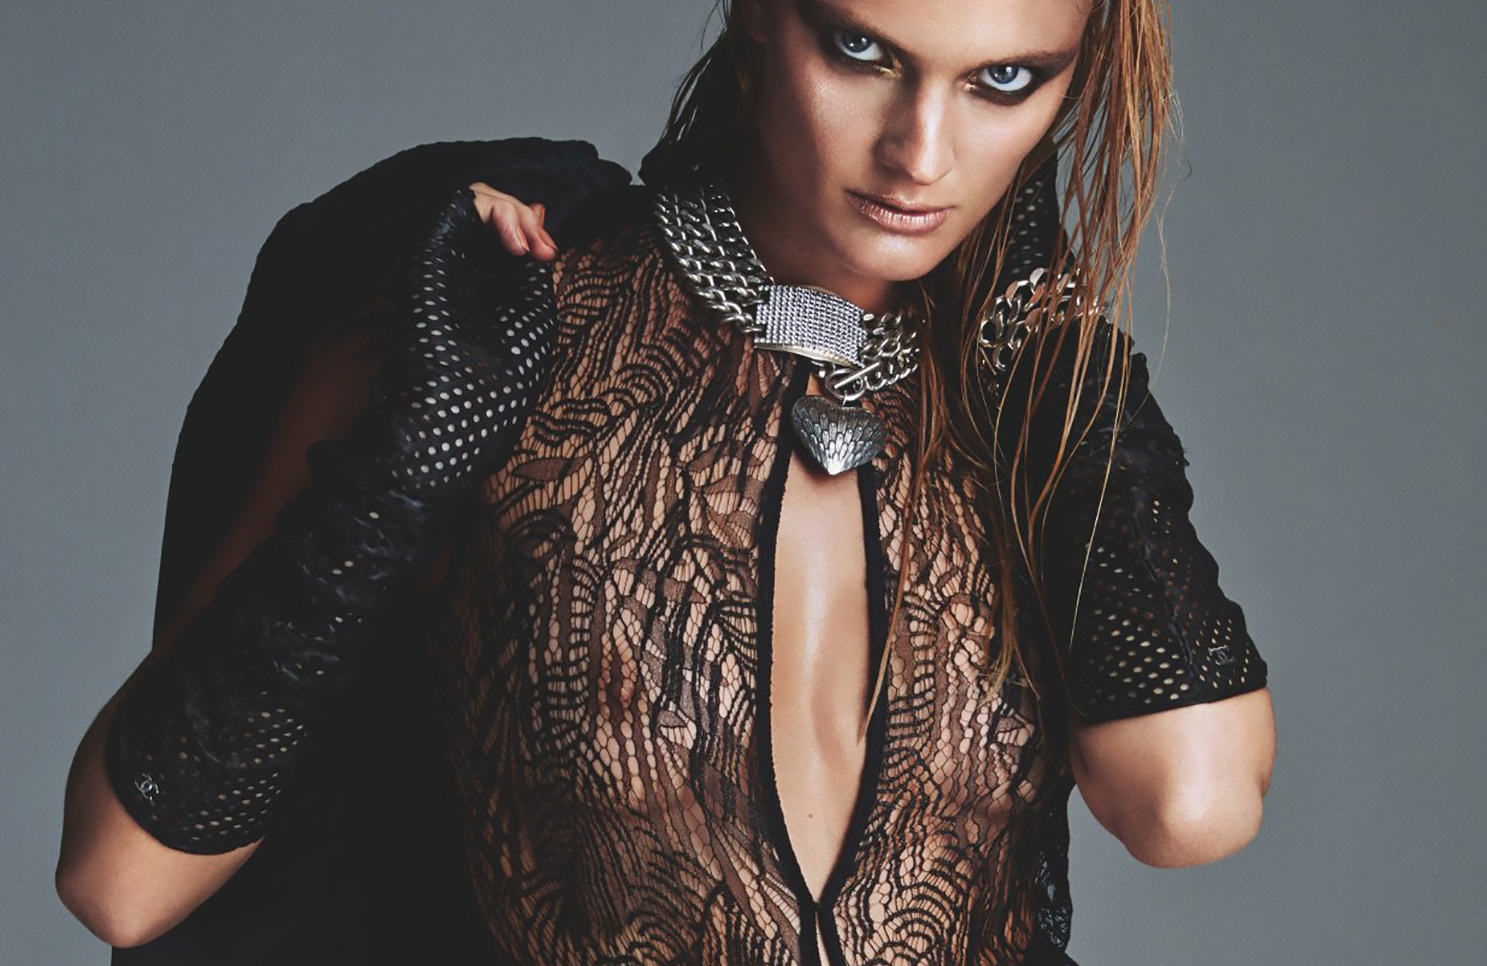 Forum on this topic: Model Minute: Constance Jablonski, model-minute-constance-jablonski/